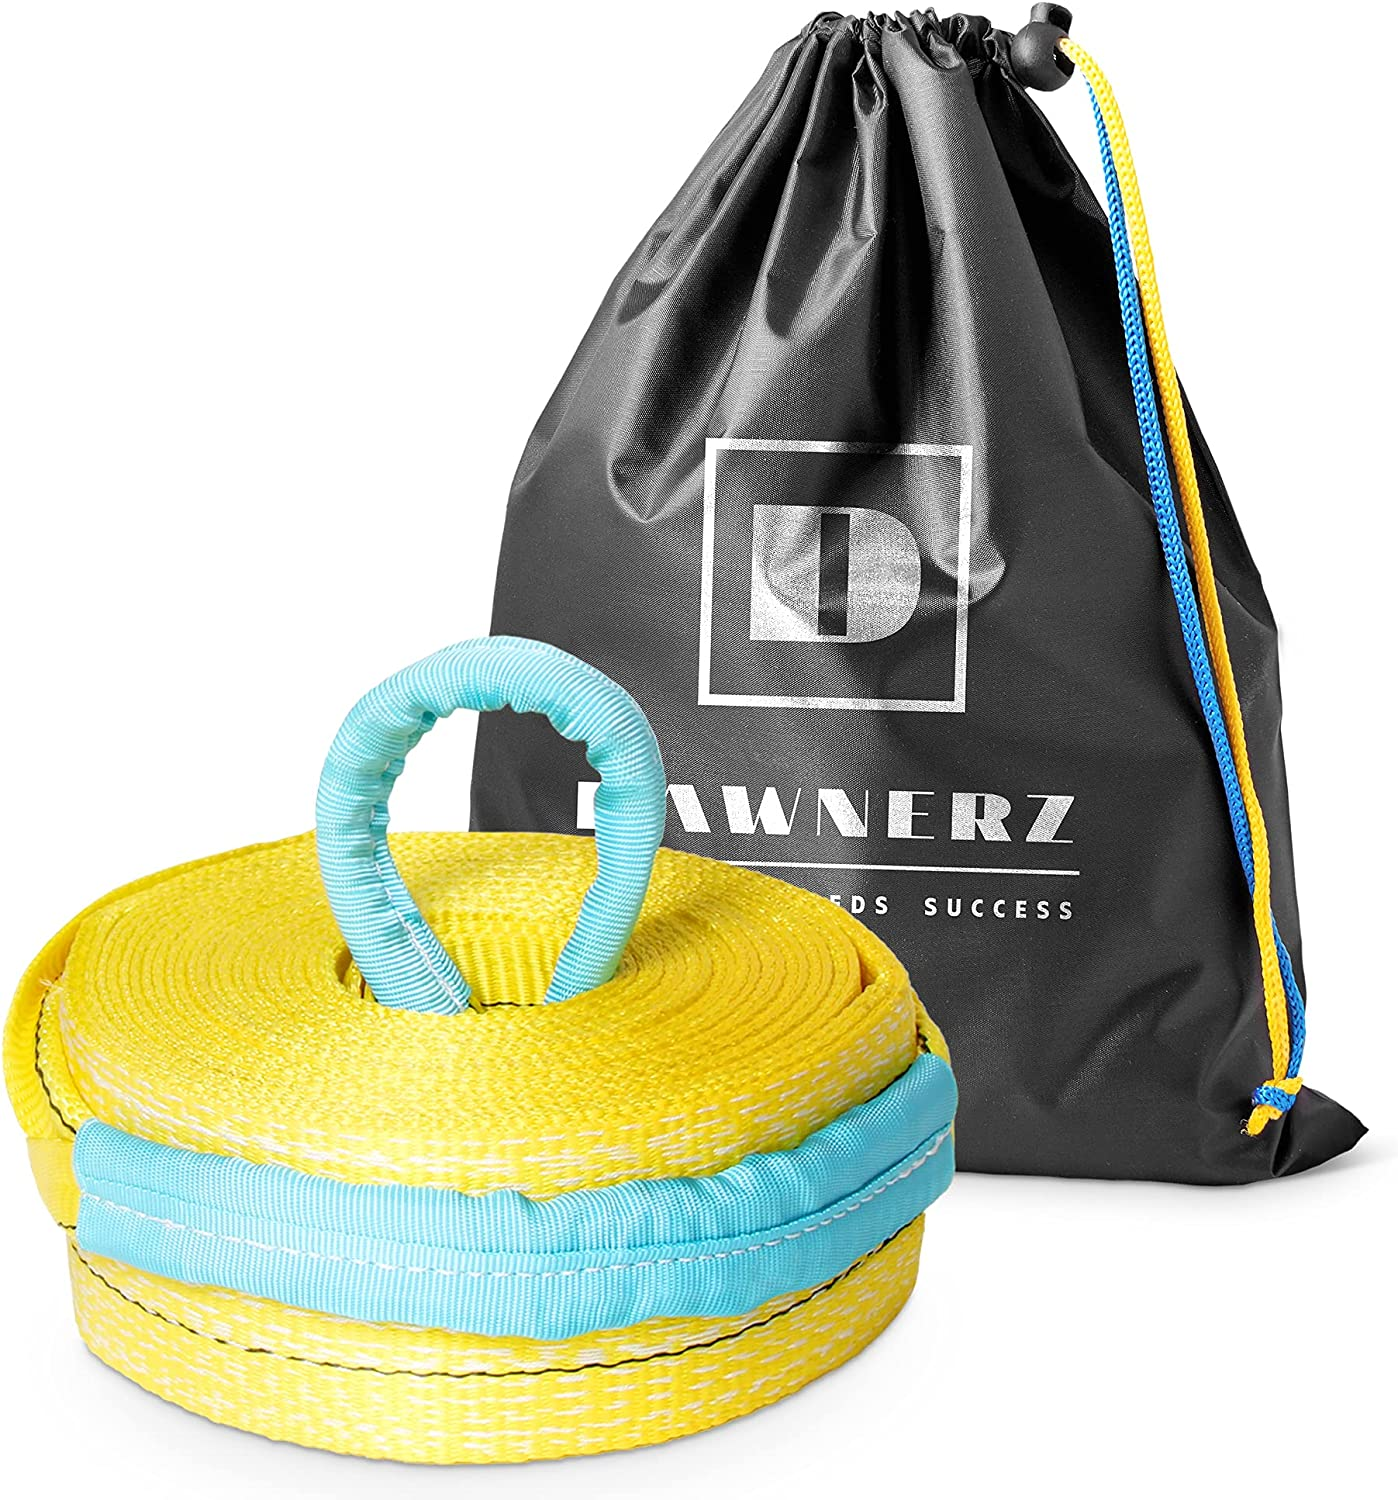 Tow Strap Heavy Duty 20 ft San Diego Mall 55000 lbs Towing m Dawnerz Challenge the lowest price 6 - Rope 2